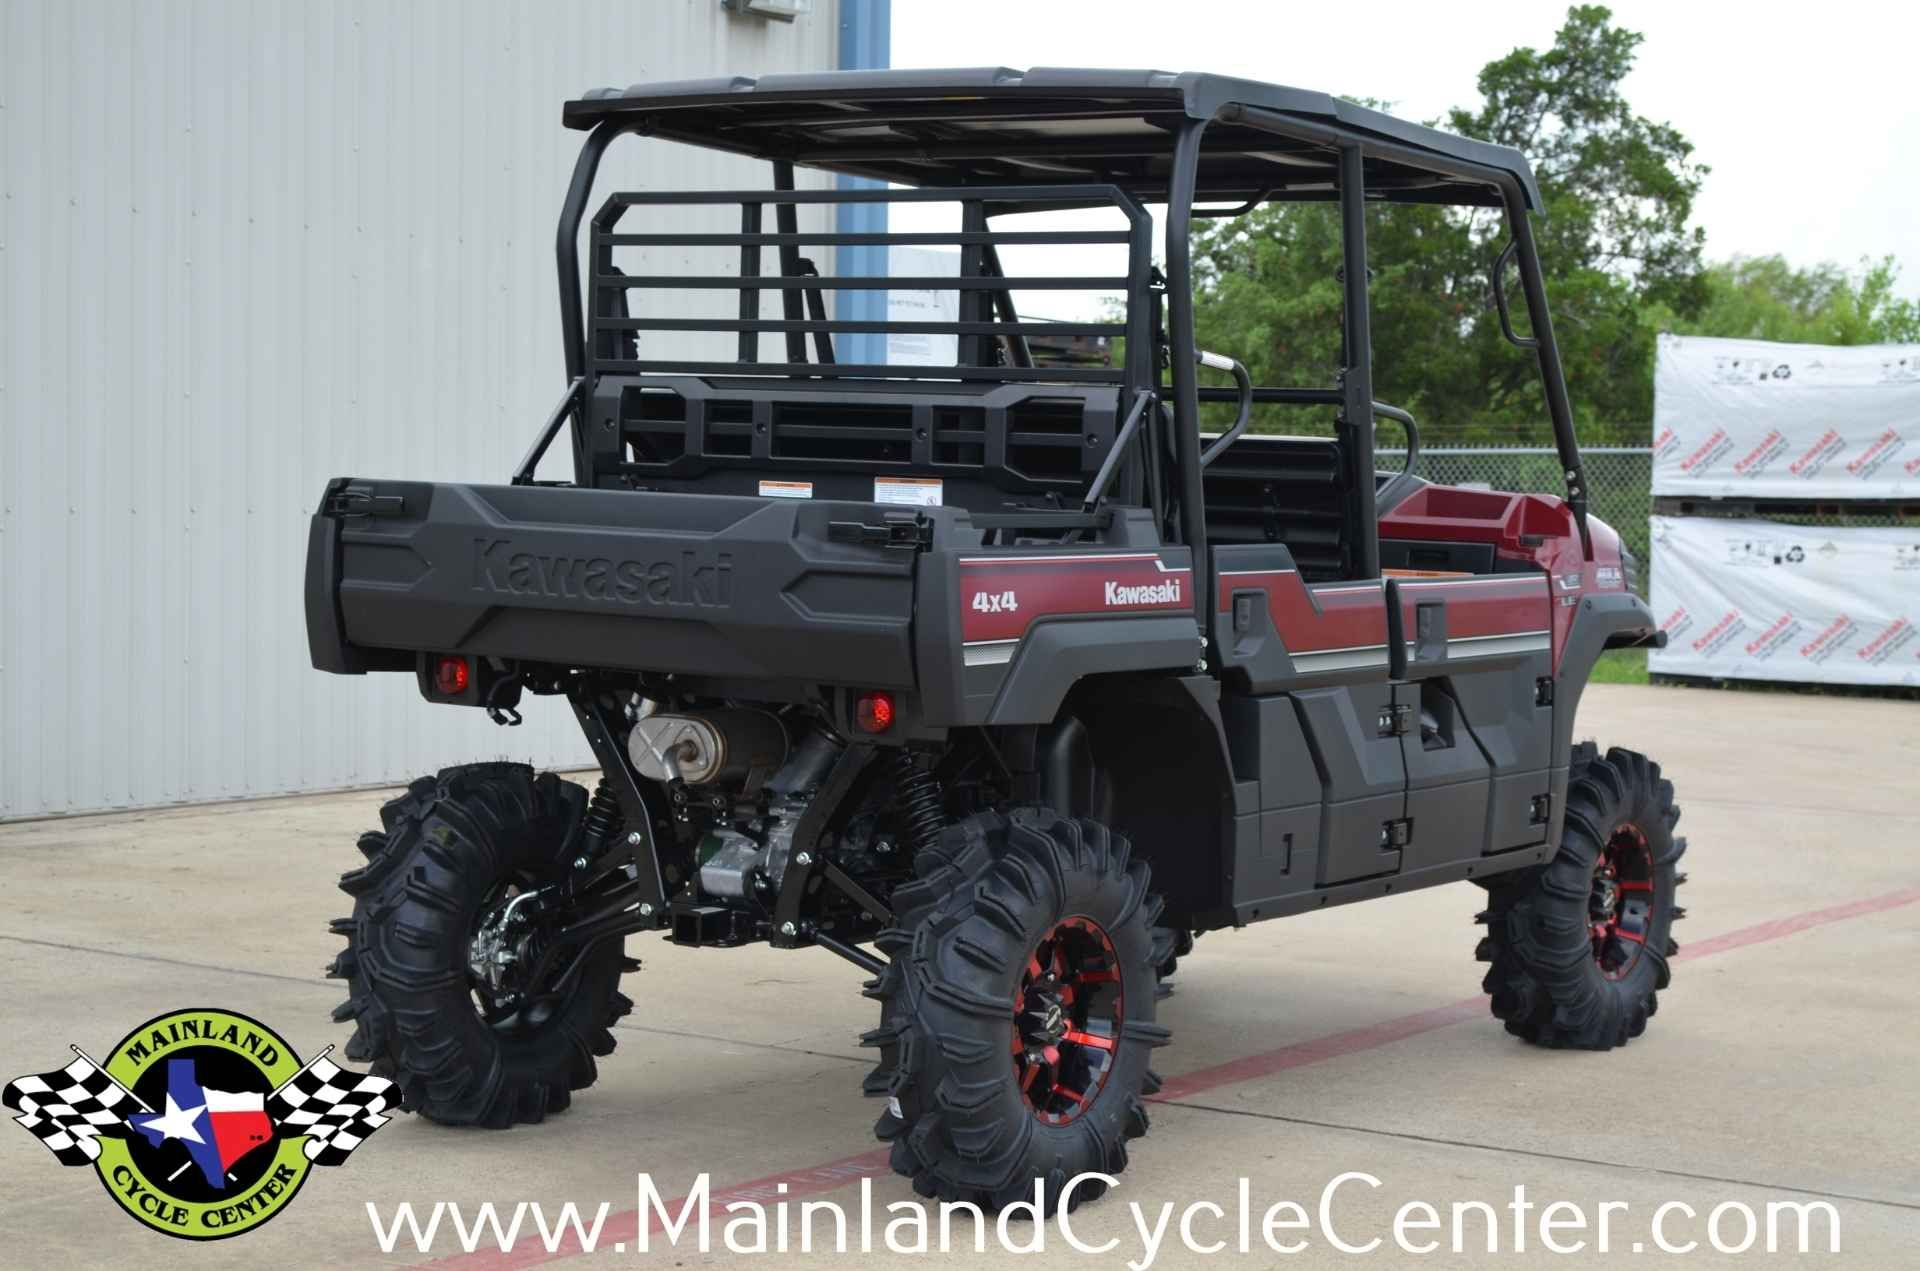 New 2016 Kawasaki Mule Pro Fxt Eps Le Atvs For Sale In